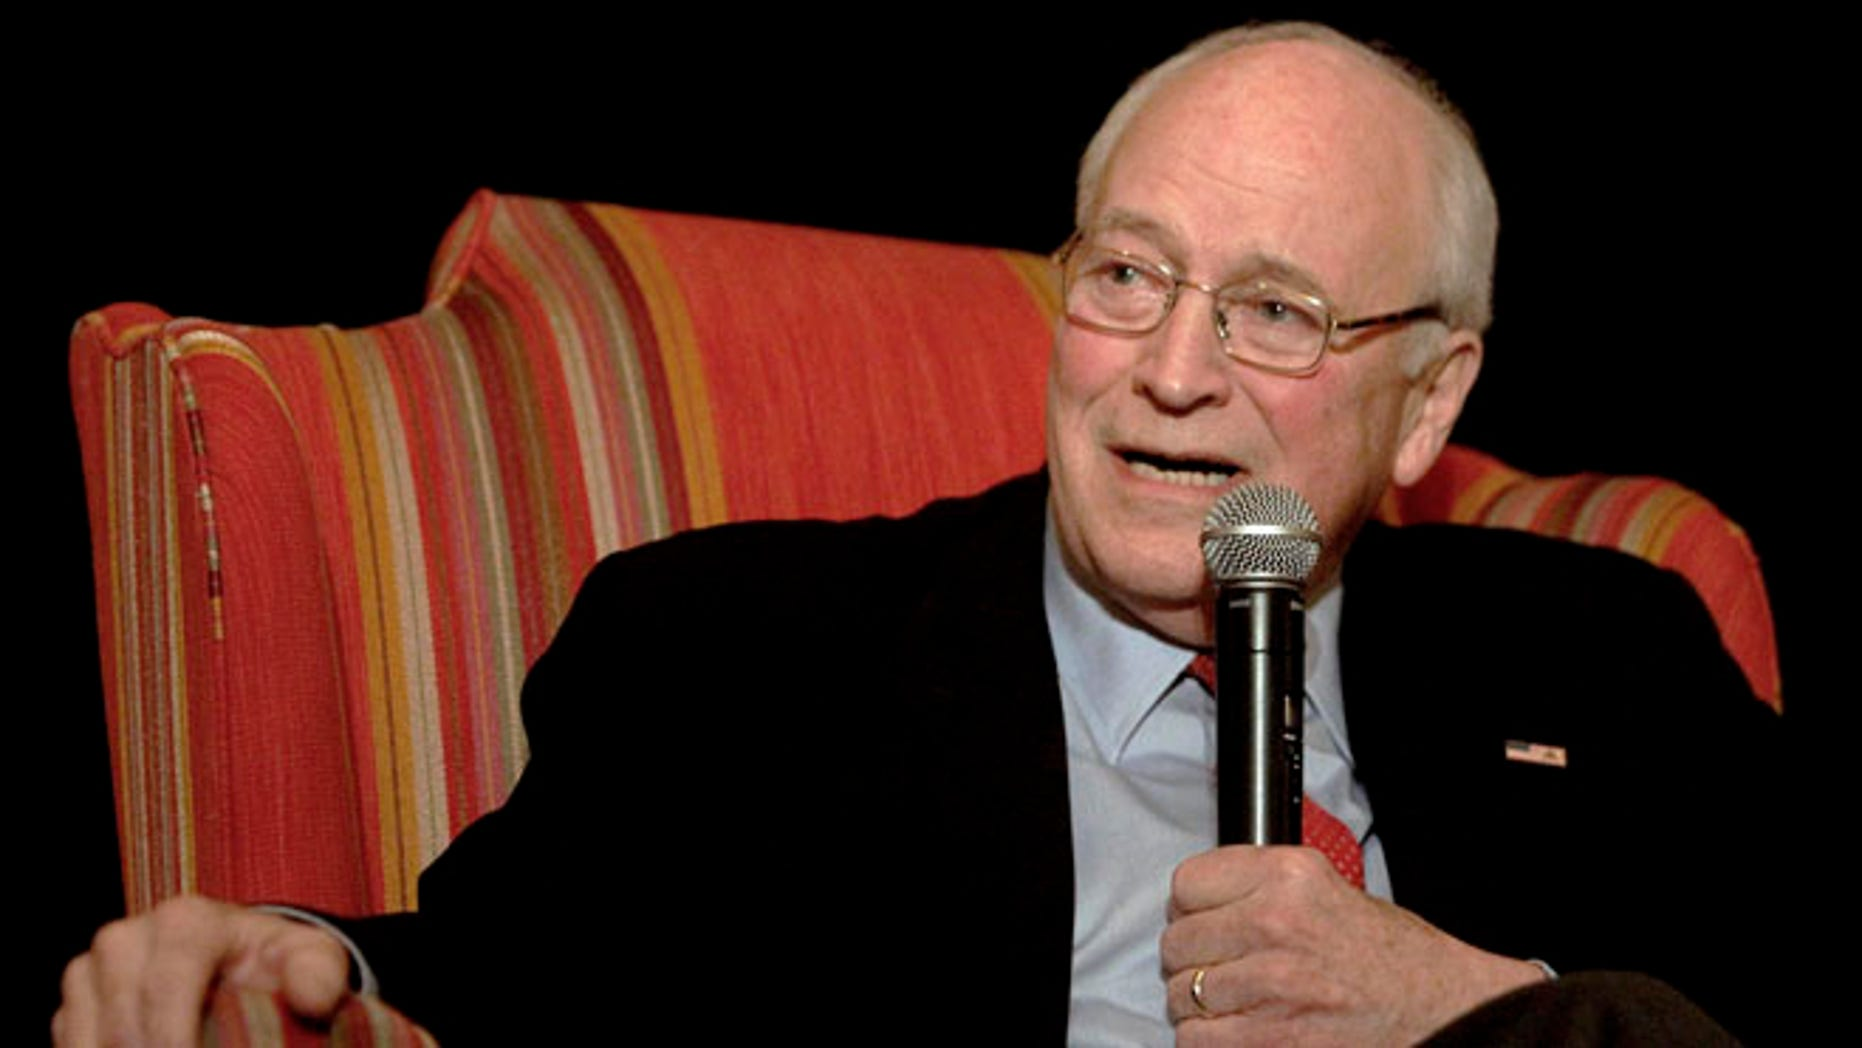 FILE: April 14, 2012: Former Vice President Dick Cheney speaks at the Wyoming Republican state convention in Cheyenne, Wyoming.